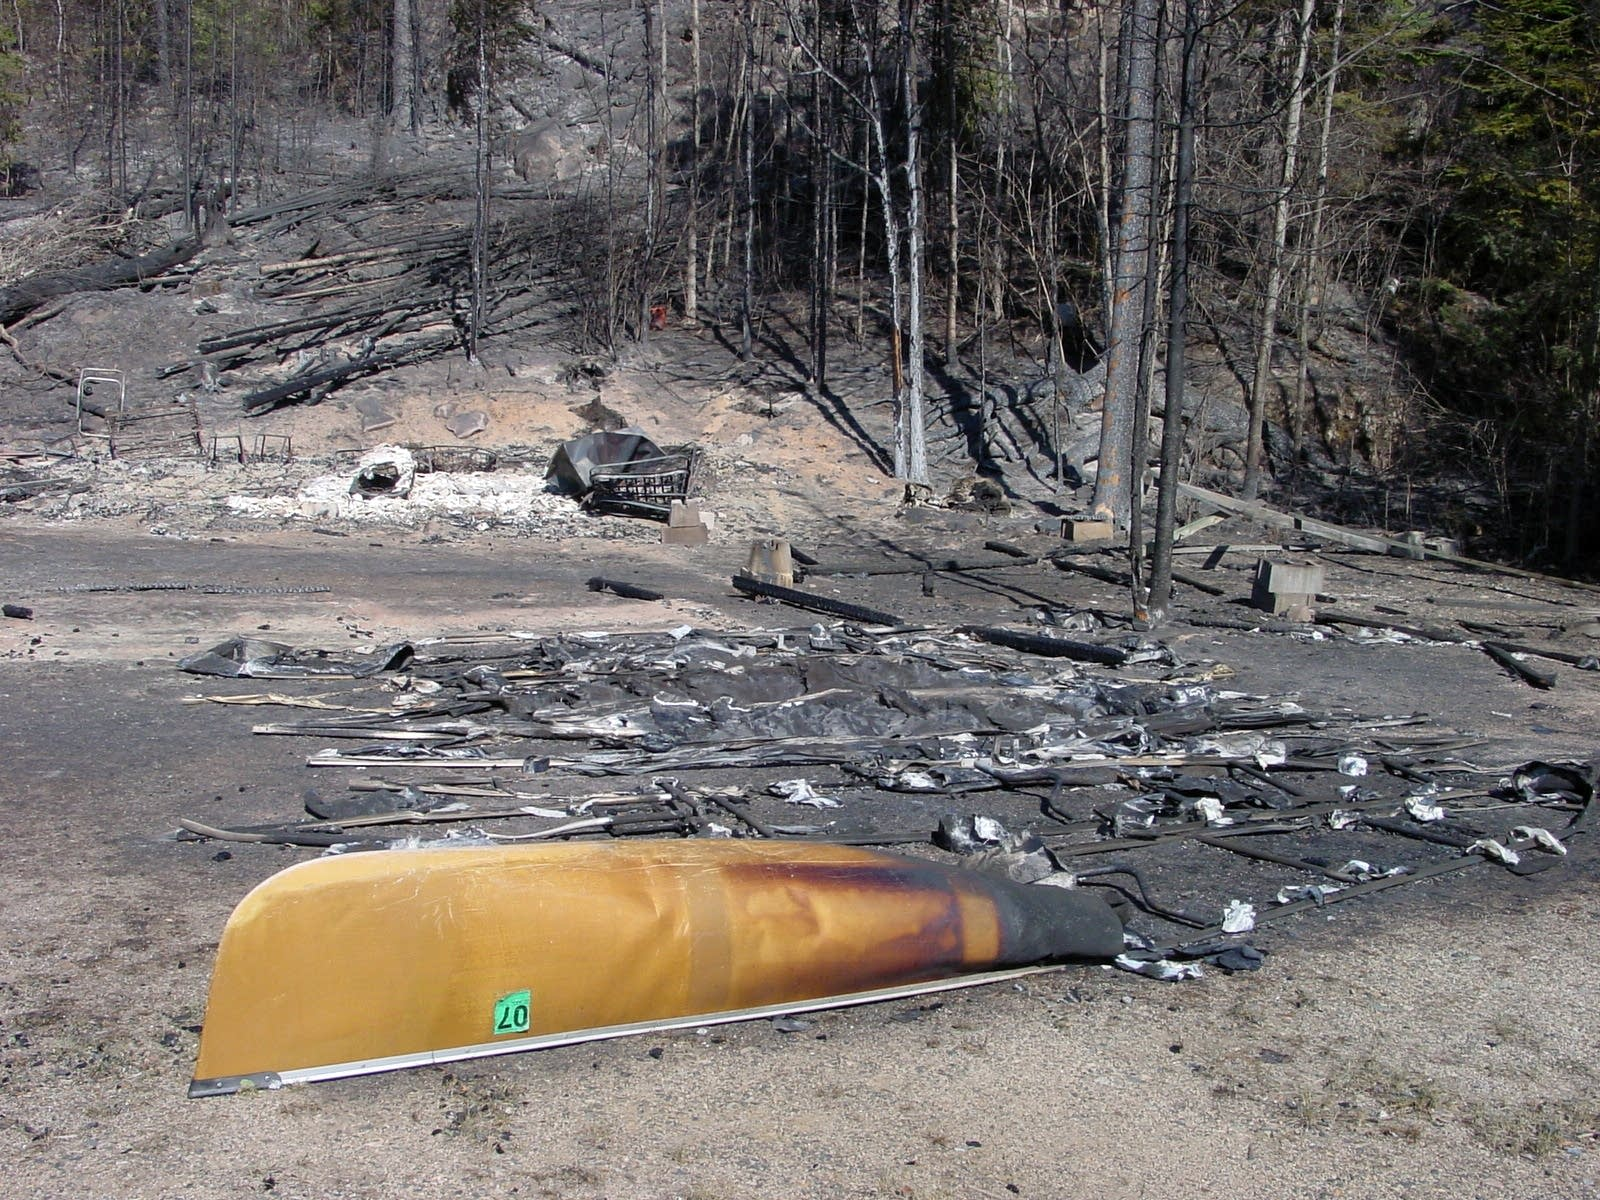 An outfitter's canoes were turned into puddles of aluminum by the fire.